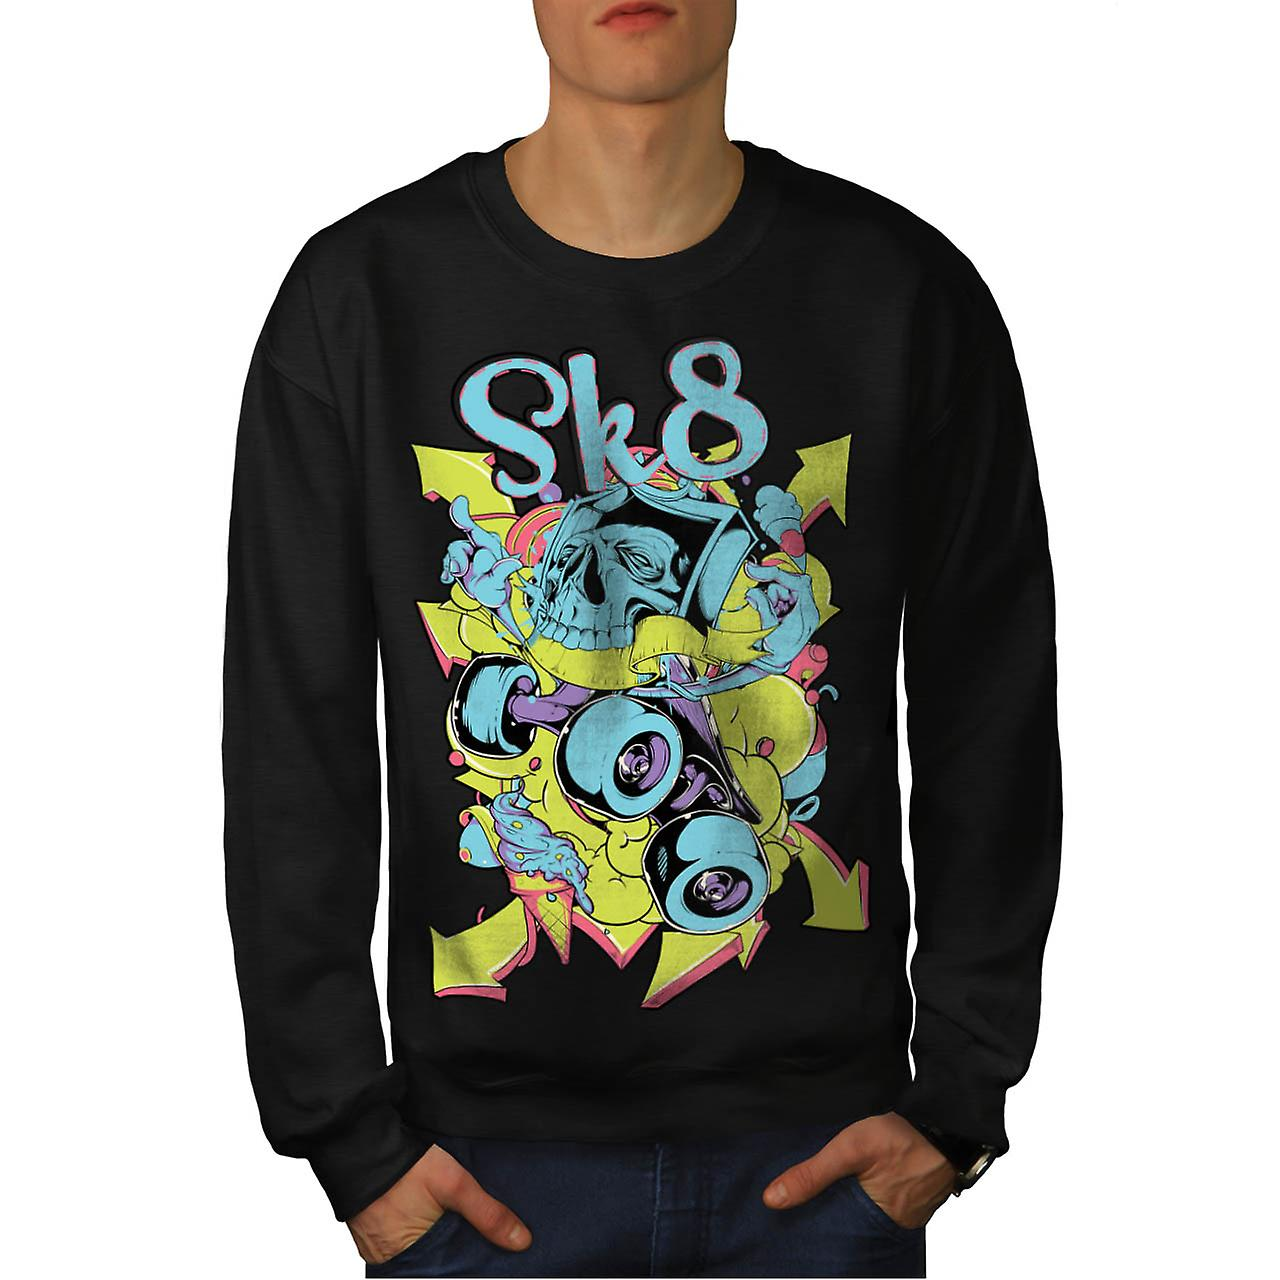 Skate Street Urban Skull Men Black Sweatshirt | Wellcoda